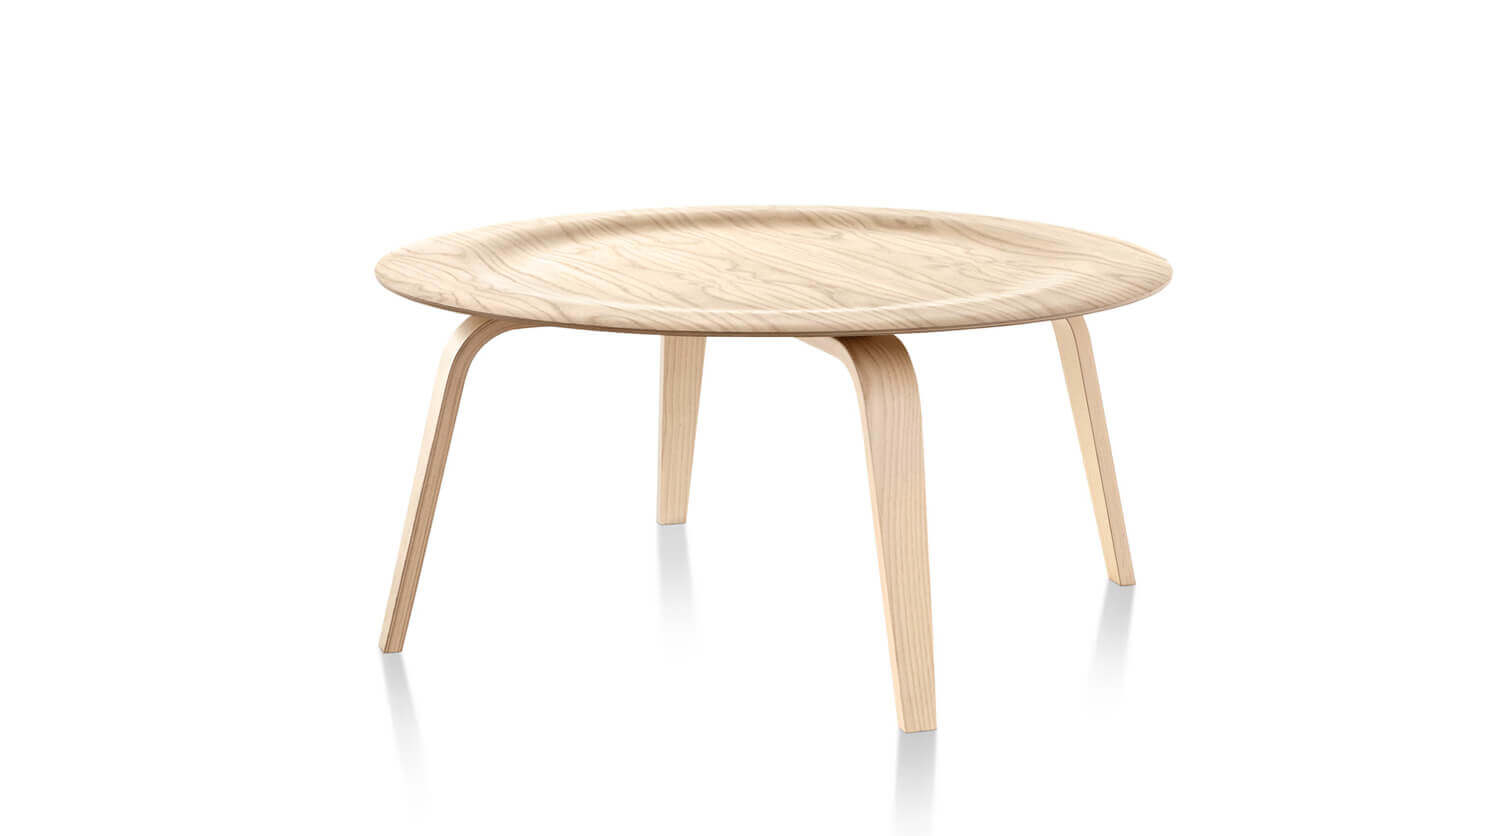 Eames Molded Plywood Coffee Table Eq3 within sizing 1488 X 836